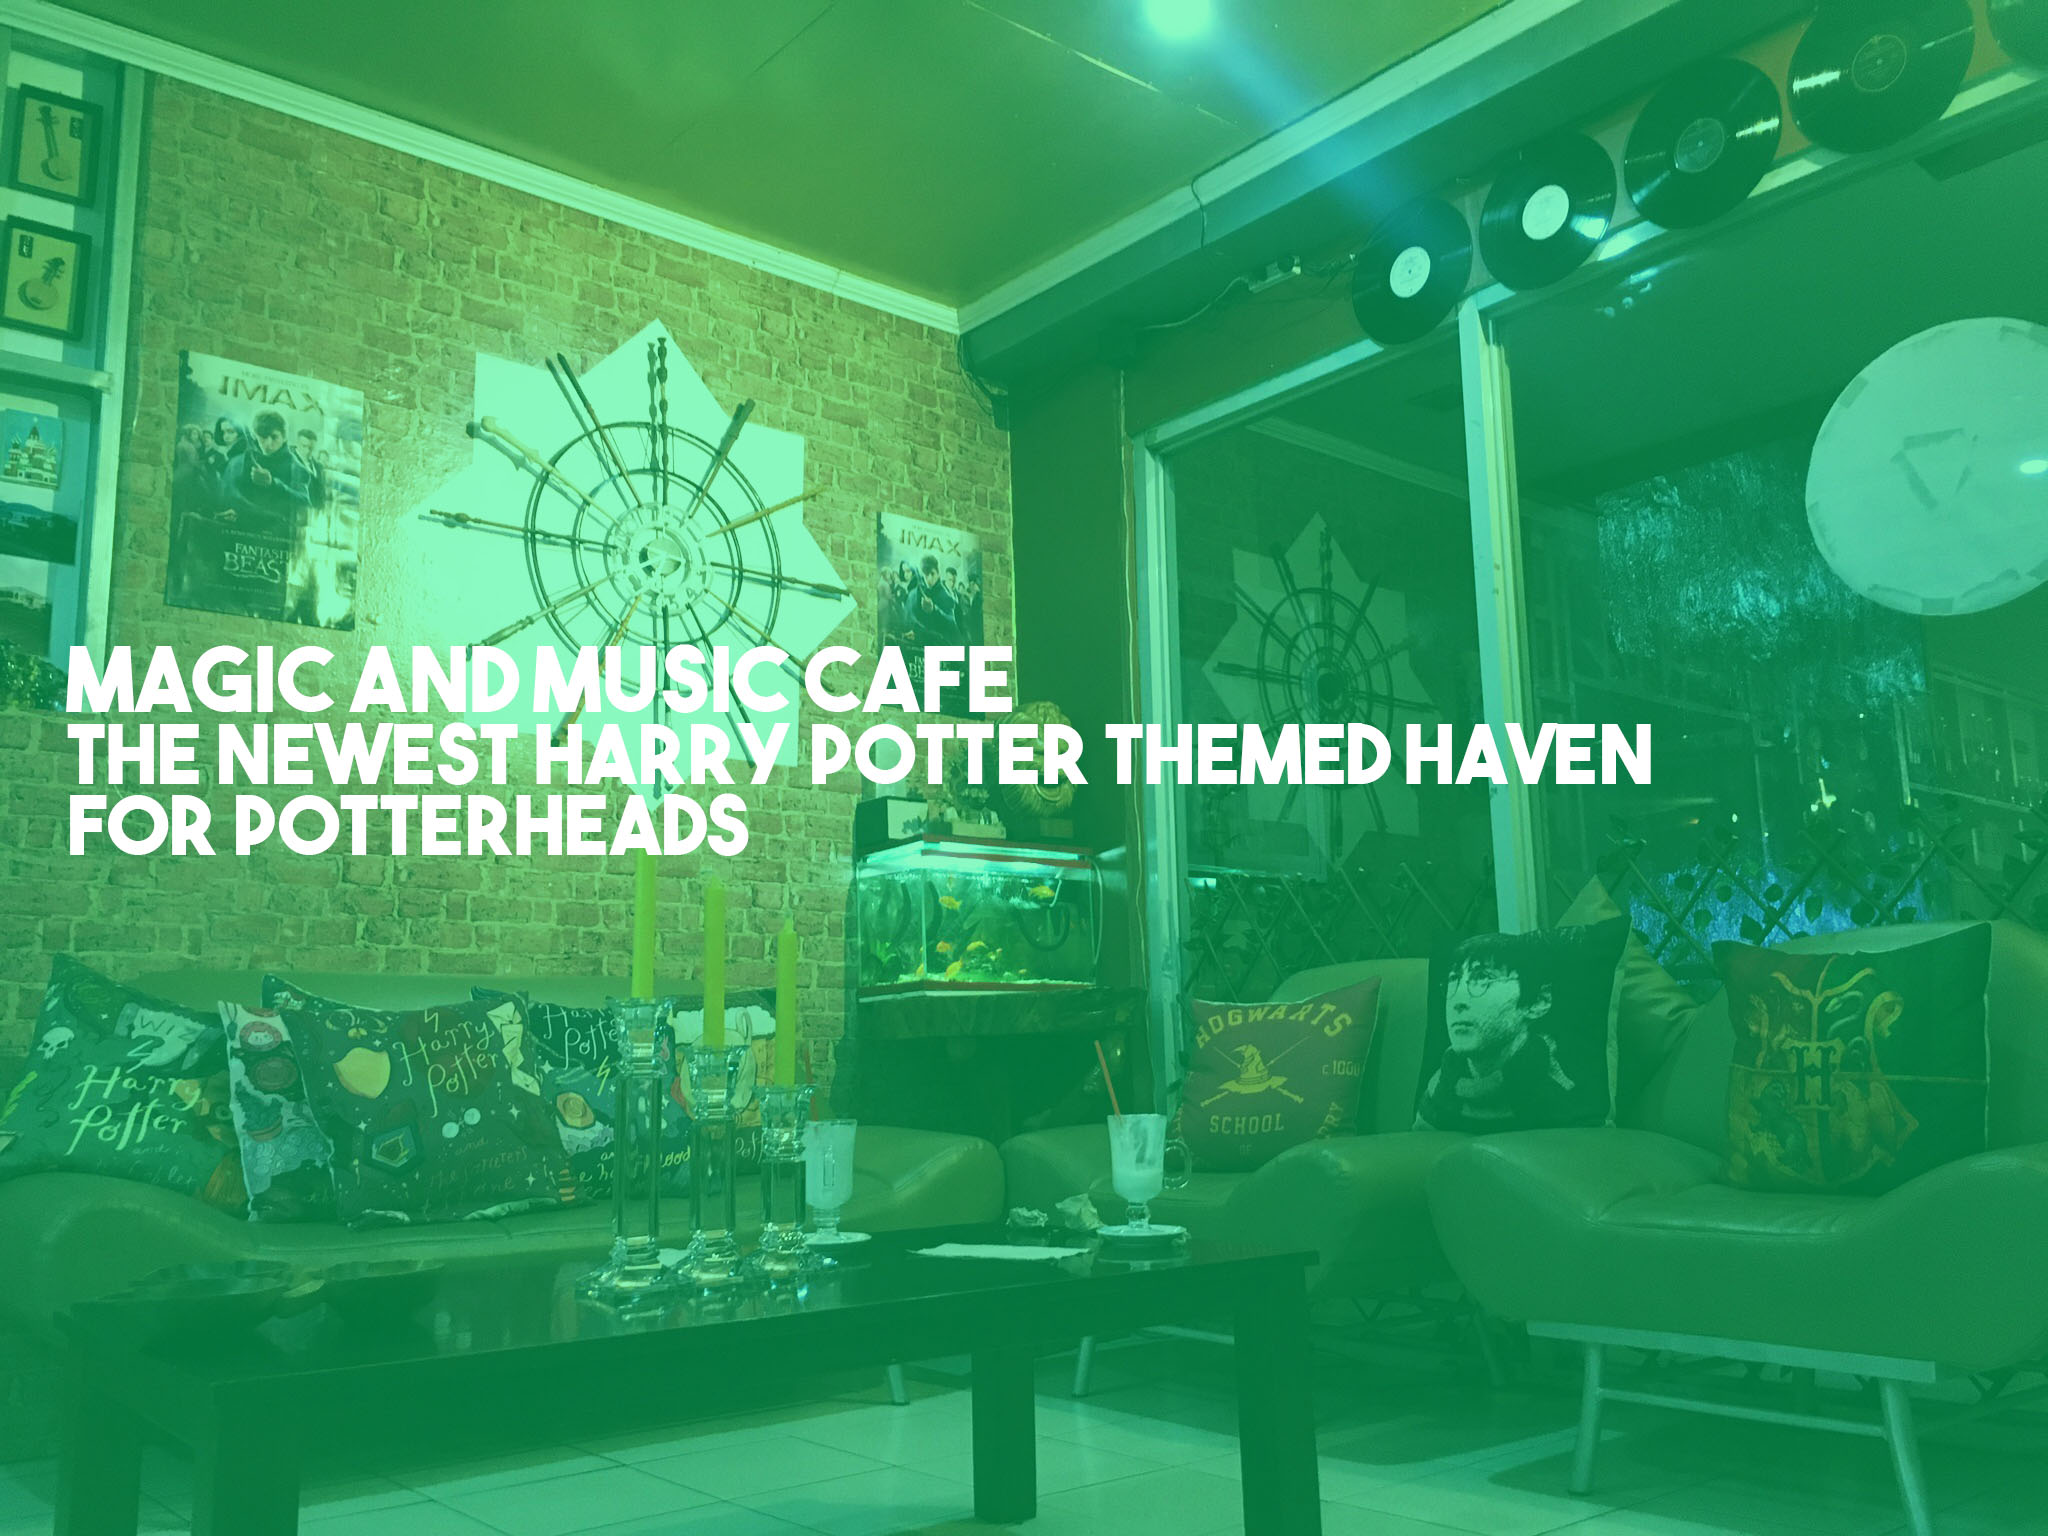 Magic and Music Cafe for Potterheads